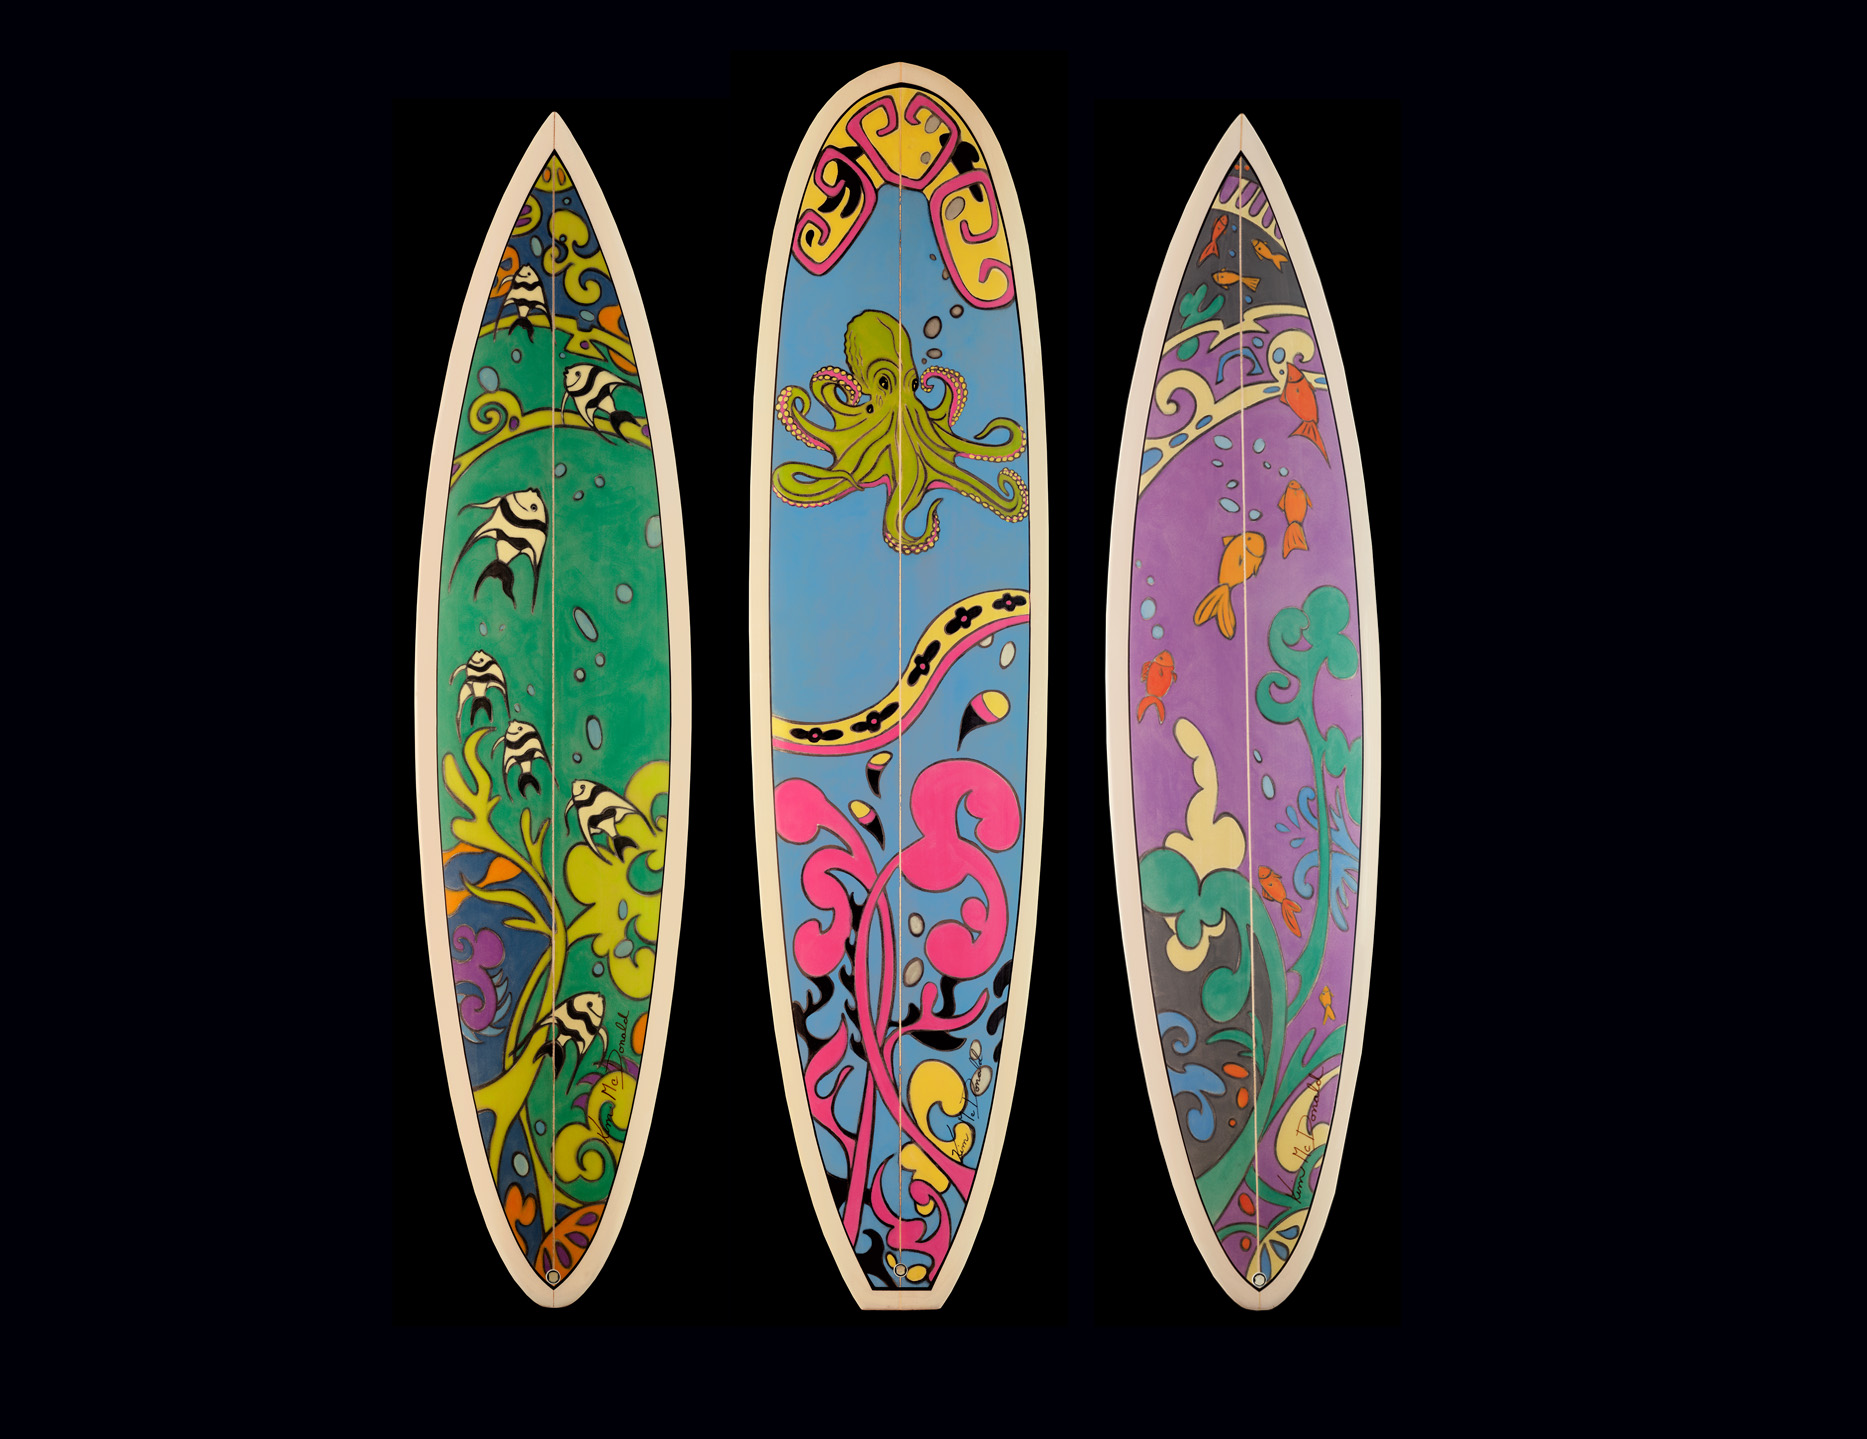 New-Colorful-Boards-BLK.jpg